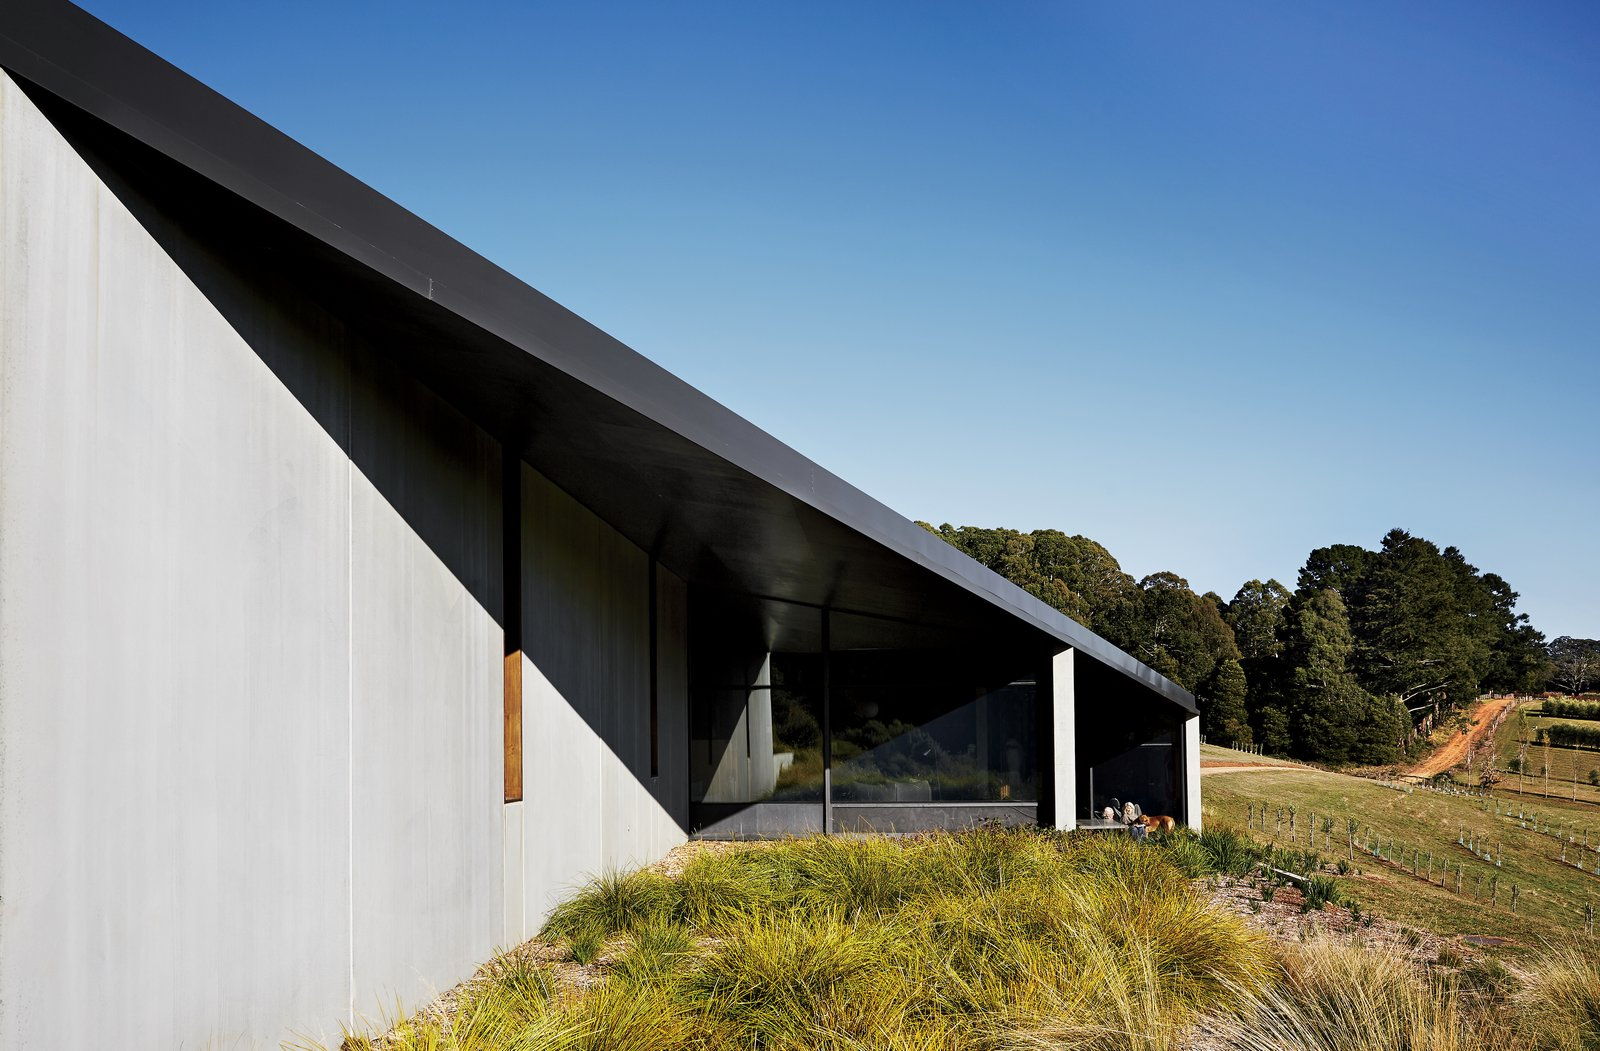 Exterior, Concrete Siding Material, and House Building Type Embedded in the rugged southern Australian landscape, the House at Hanging Rock comprises three volumes connected by a sweeping rhomboid roof. The Colorbond steel overhang is in a dark-gray shade called Monument.  Photo 1 of 10 in Richly Furnished Home Frames Striking Landscape Views